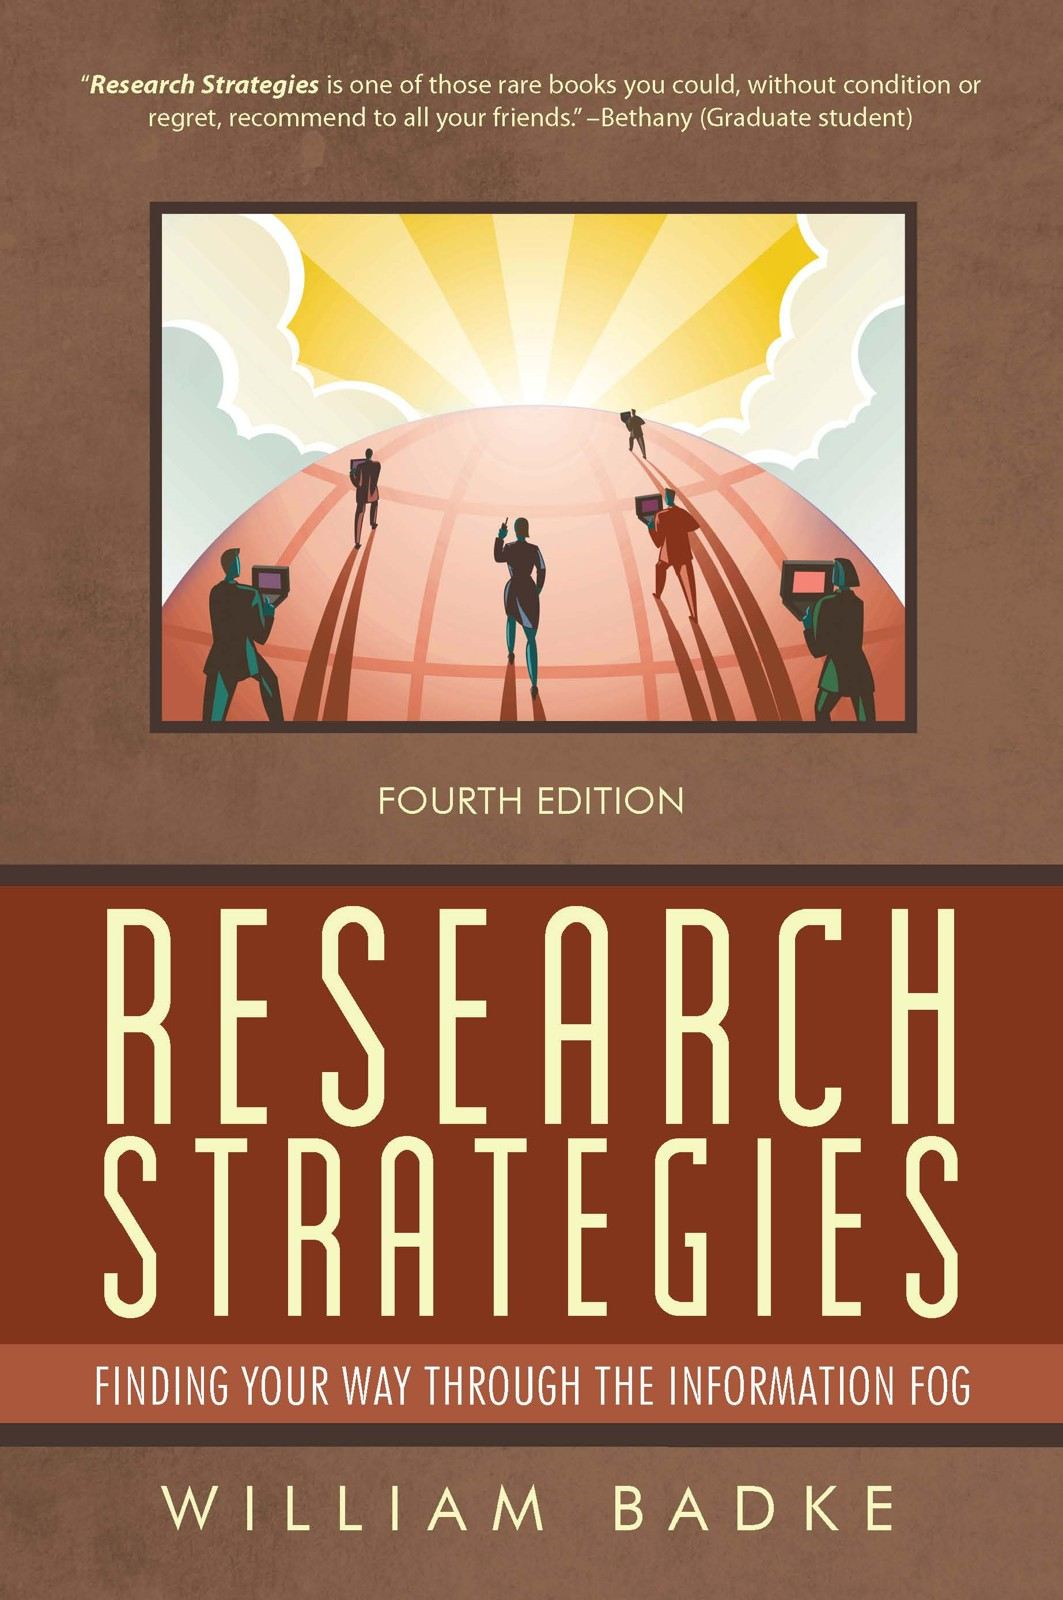 Research Strategies By: William Badke